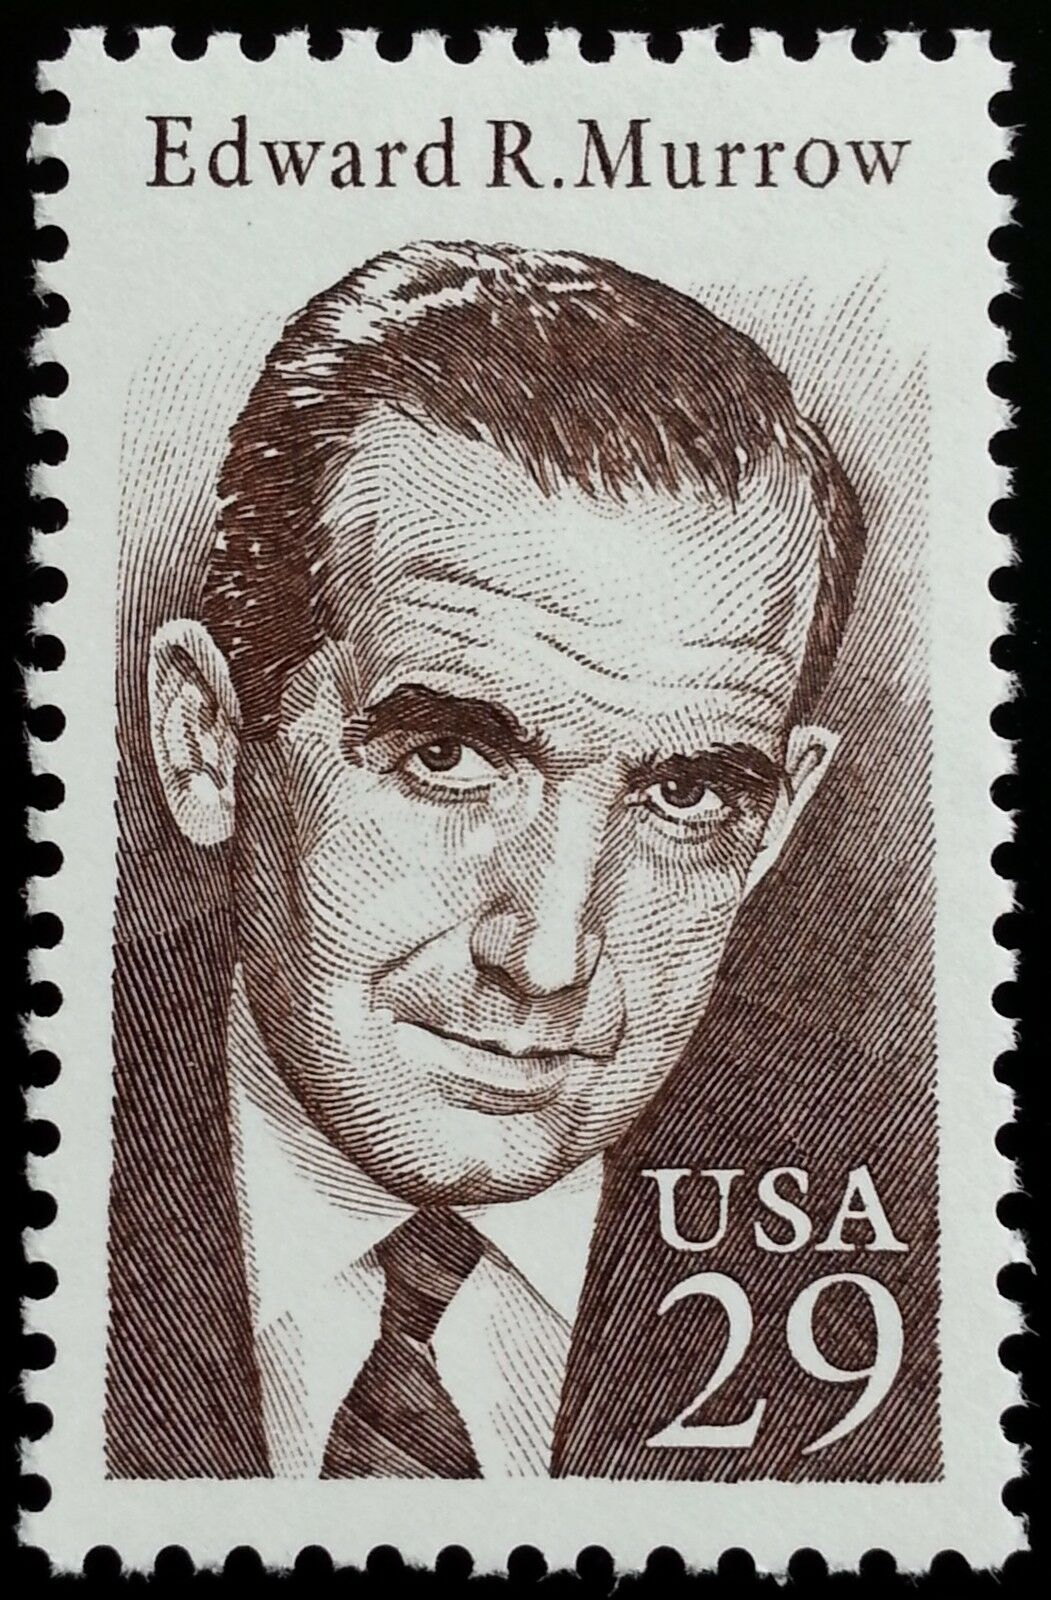 1994 29c Edward R. Murrow, Journalist Scott 2812 Mint F